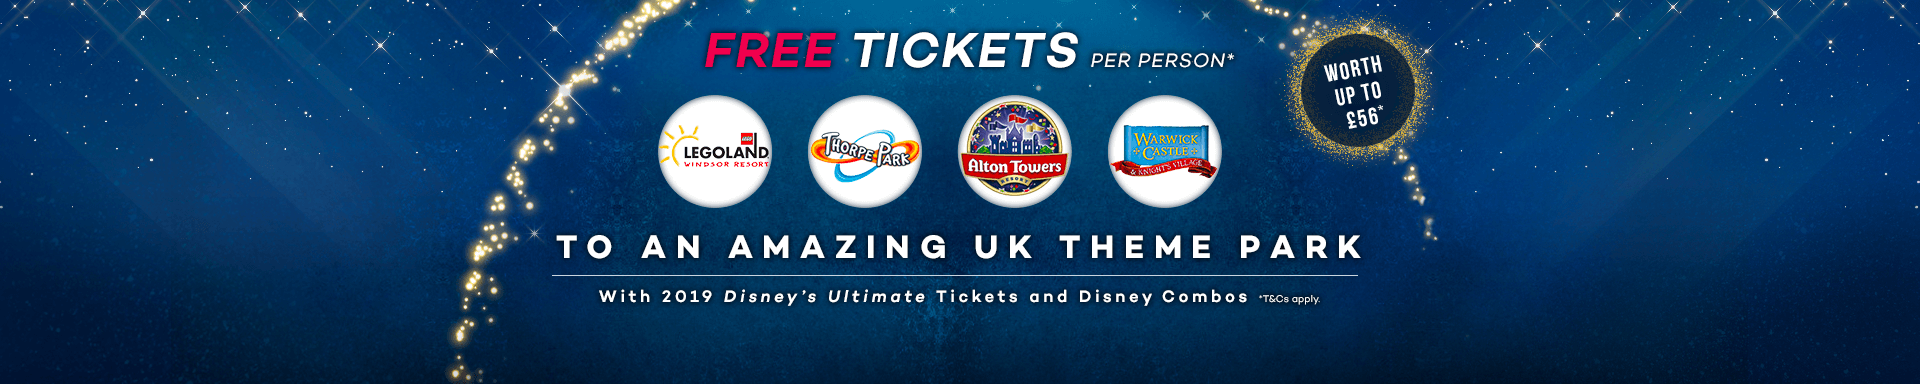 Enjoy FREE UK Theme Park Tickets on Us!  logo